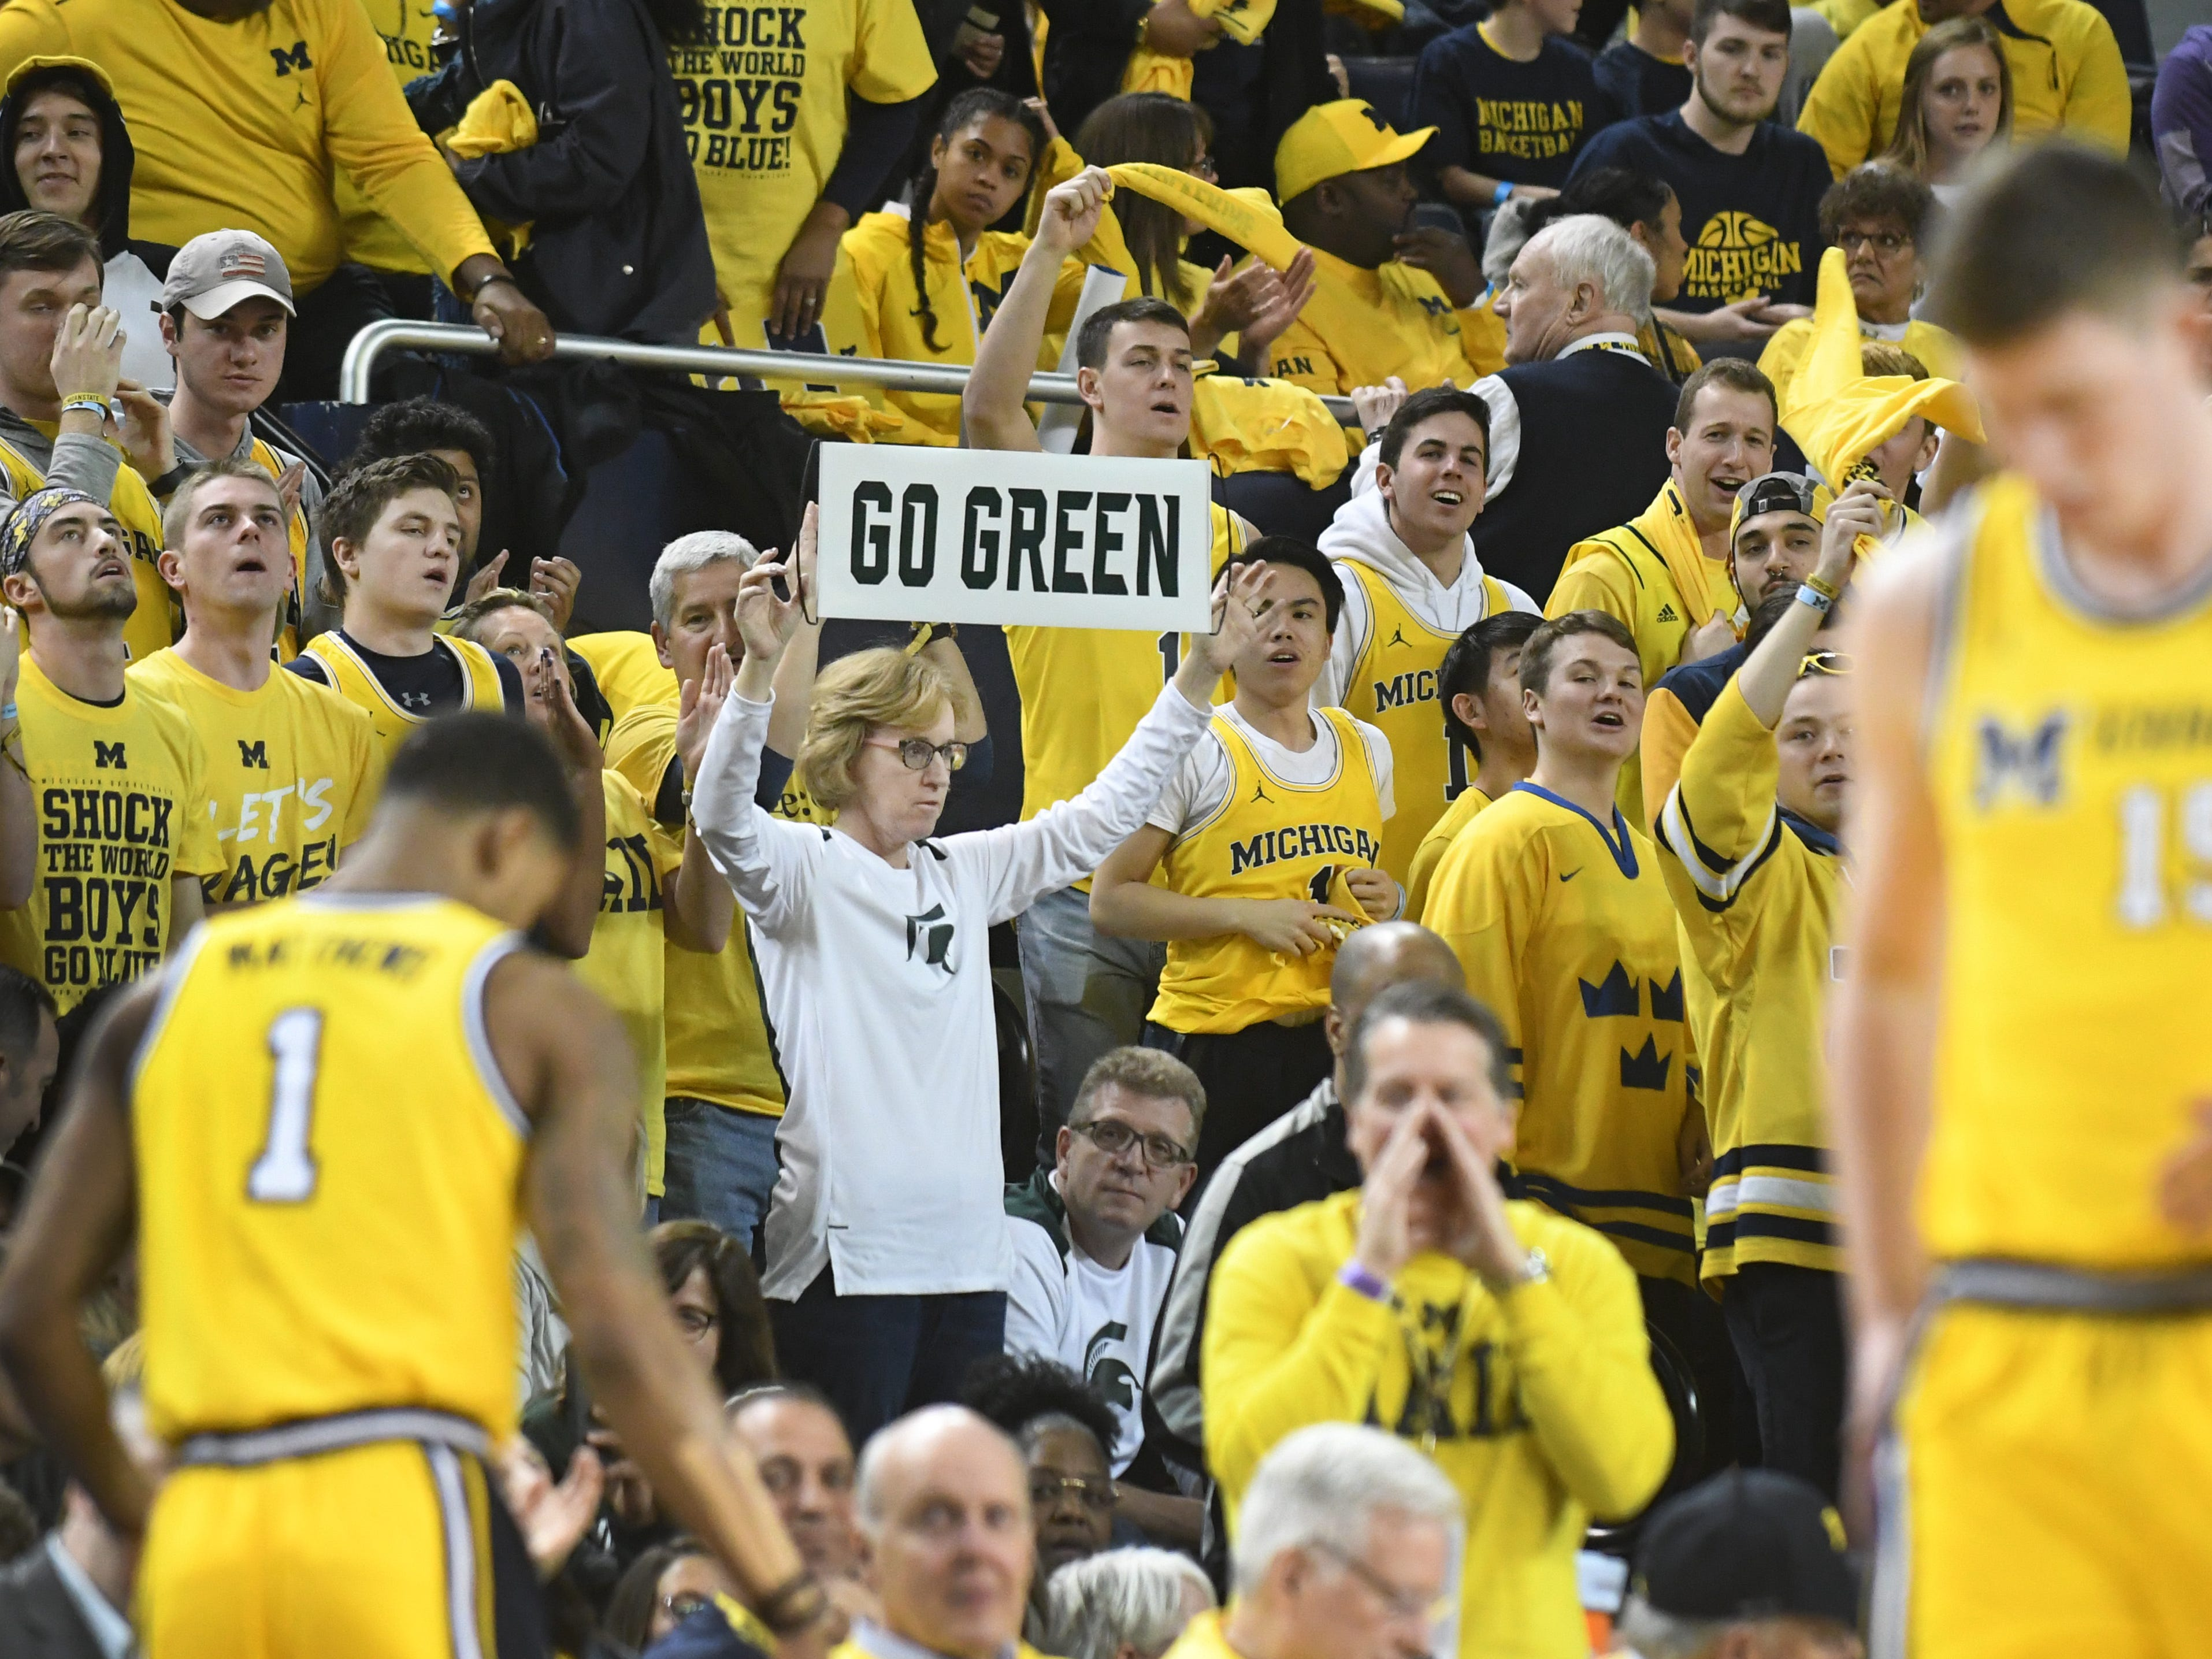 A sparse Michigan State fan in the sea of maize and blue.